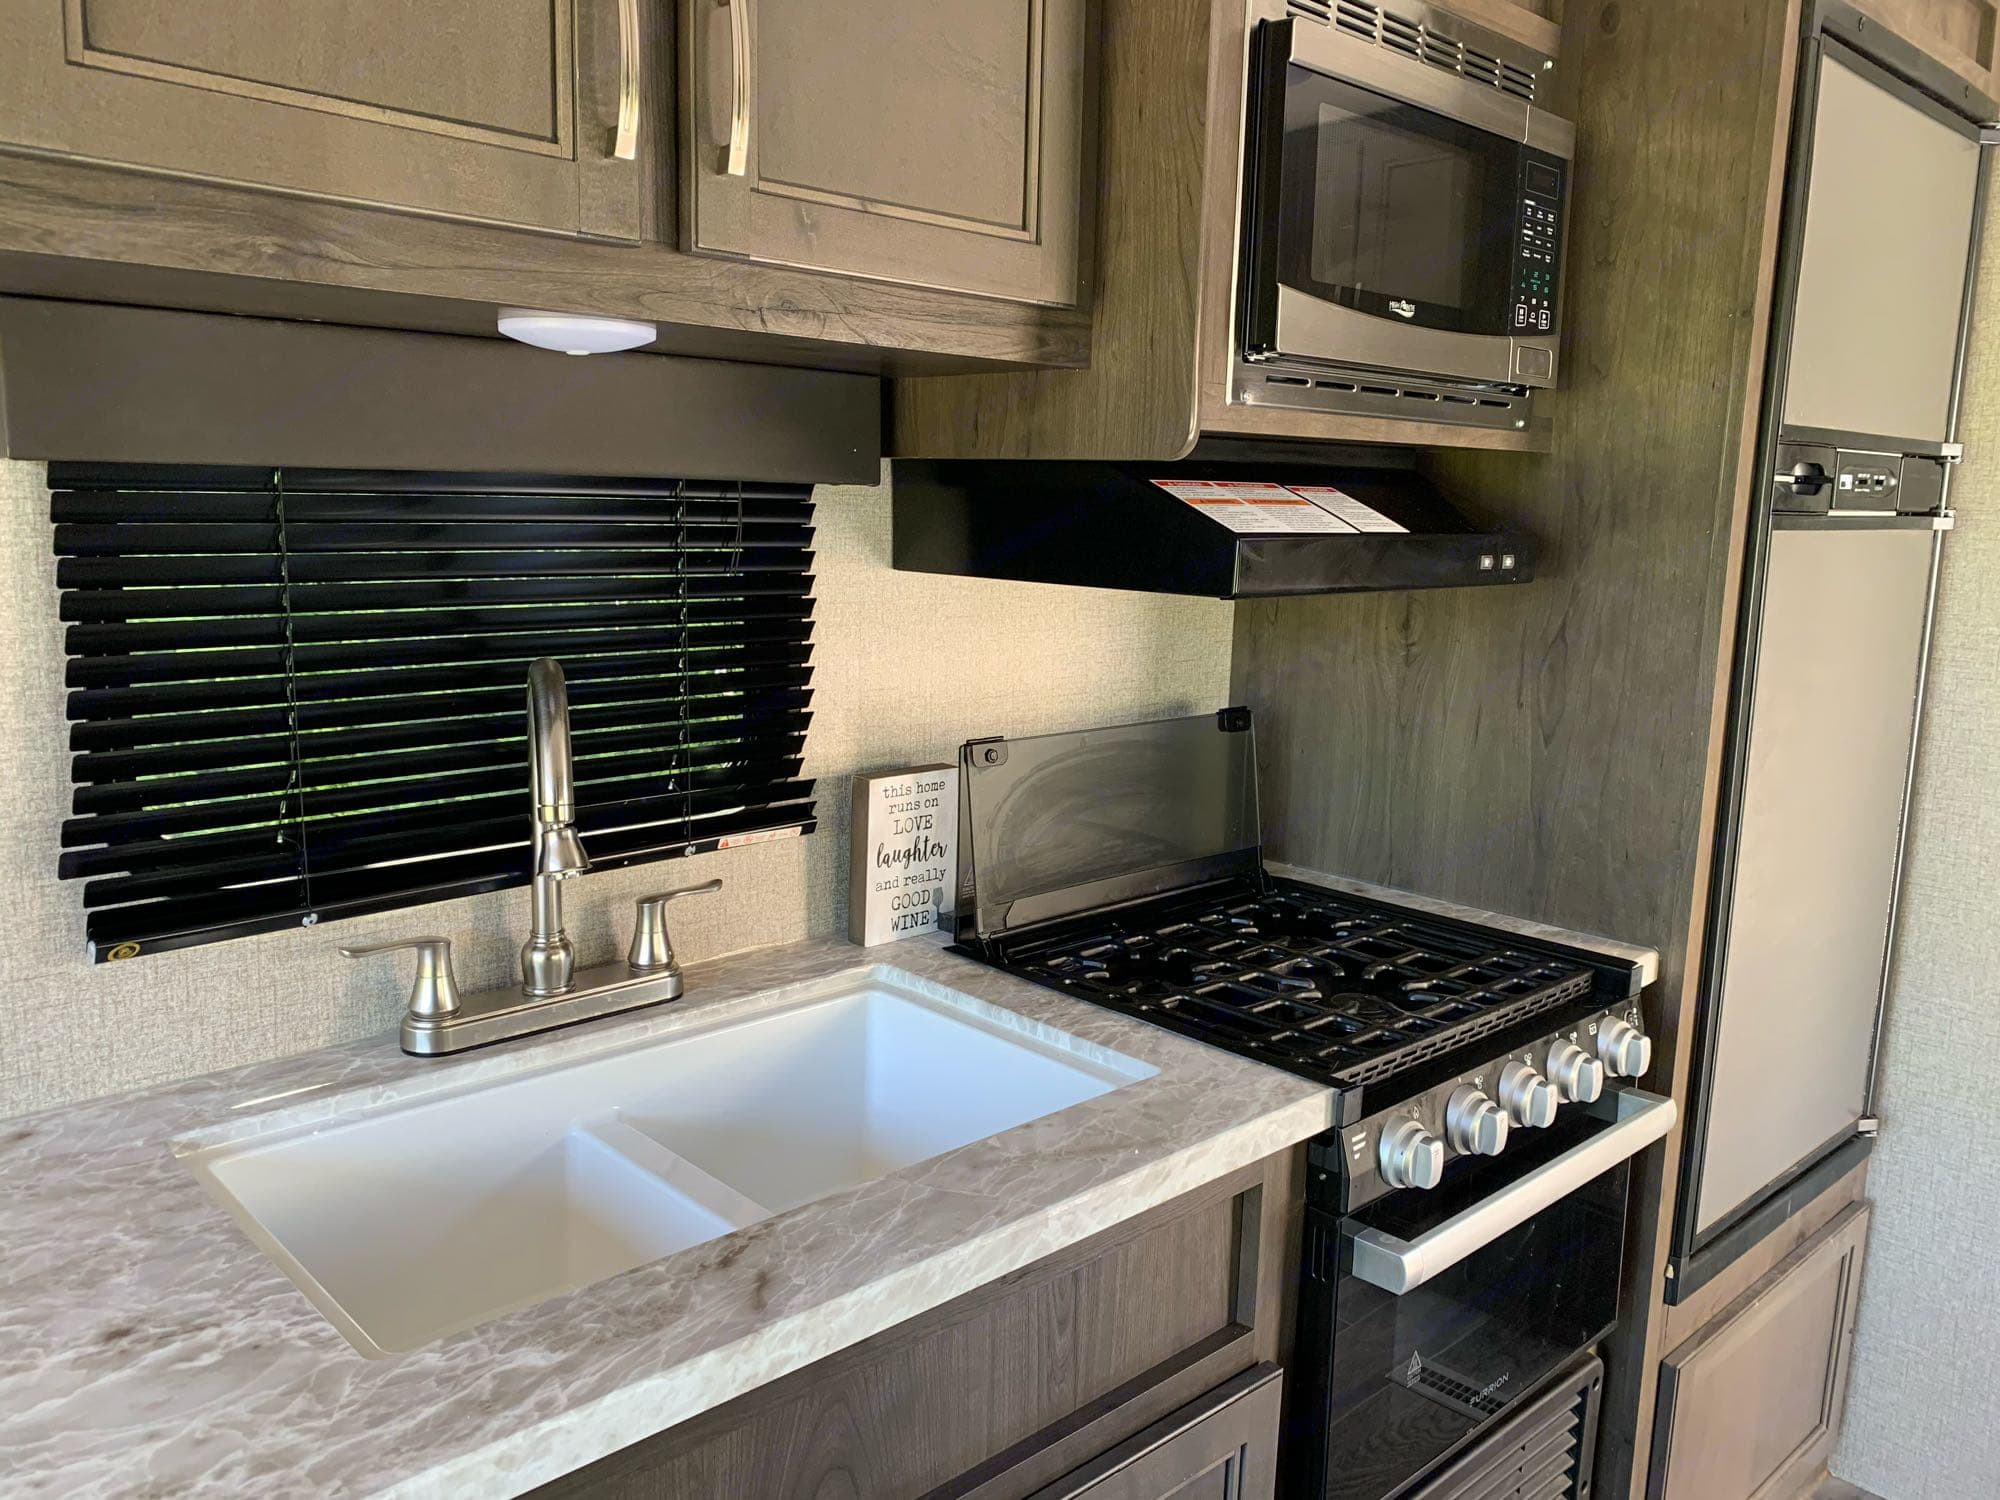 Double sink next to stovetop with oven underneath. Jayco Jay Flight 2021